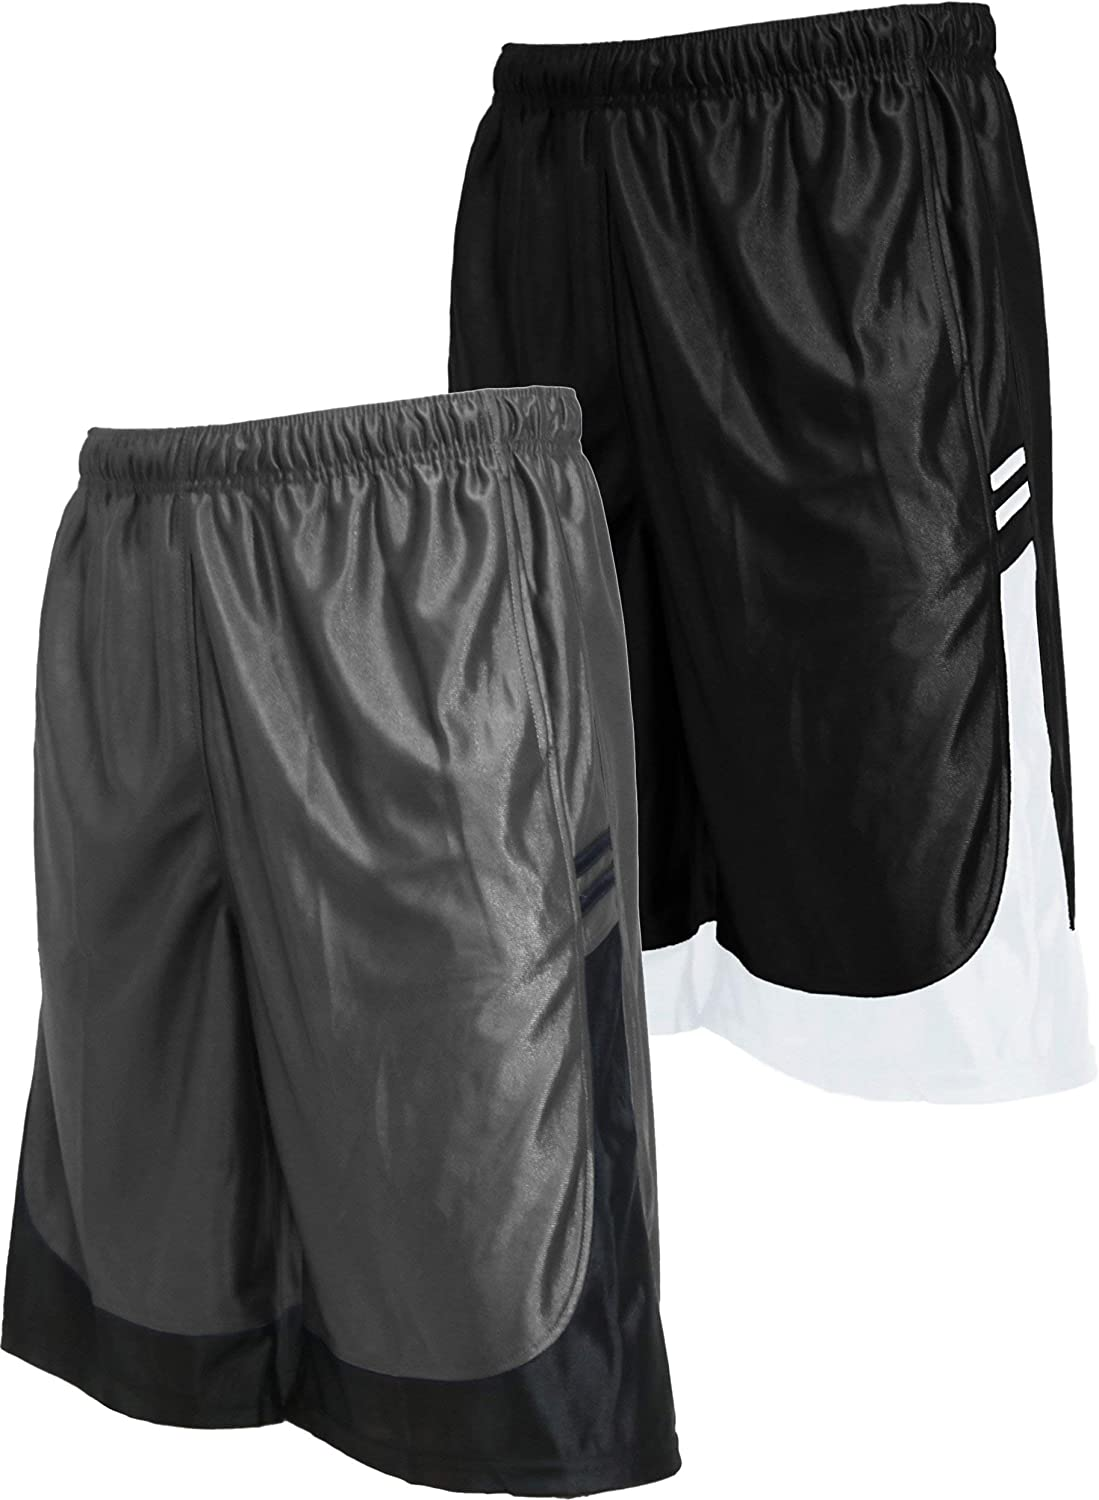 Ultra-Cheap Deals OLLIE ARNES Mens Athletic Gym Workout Portland Mall Pockets in with Shorts Pac